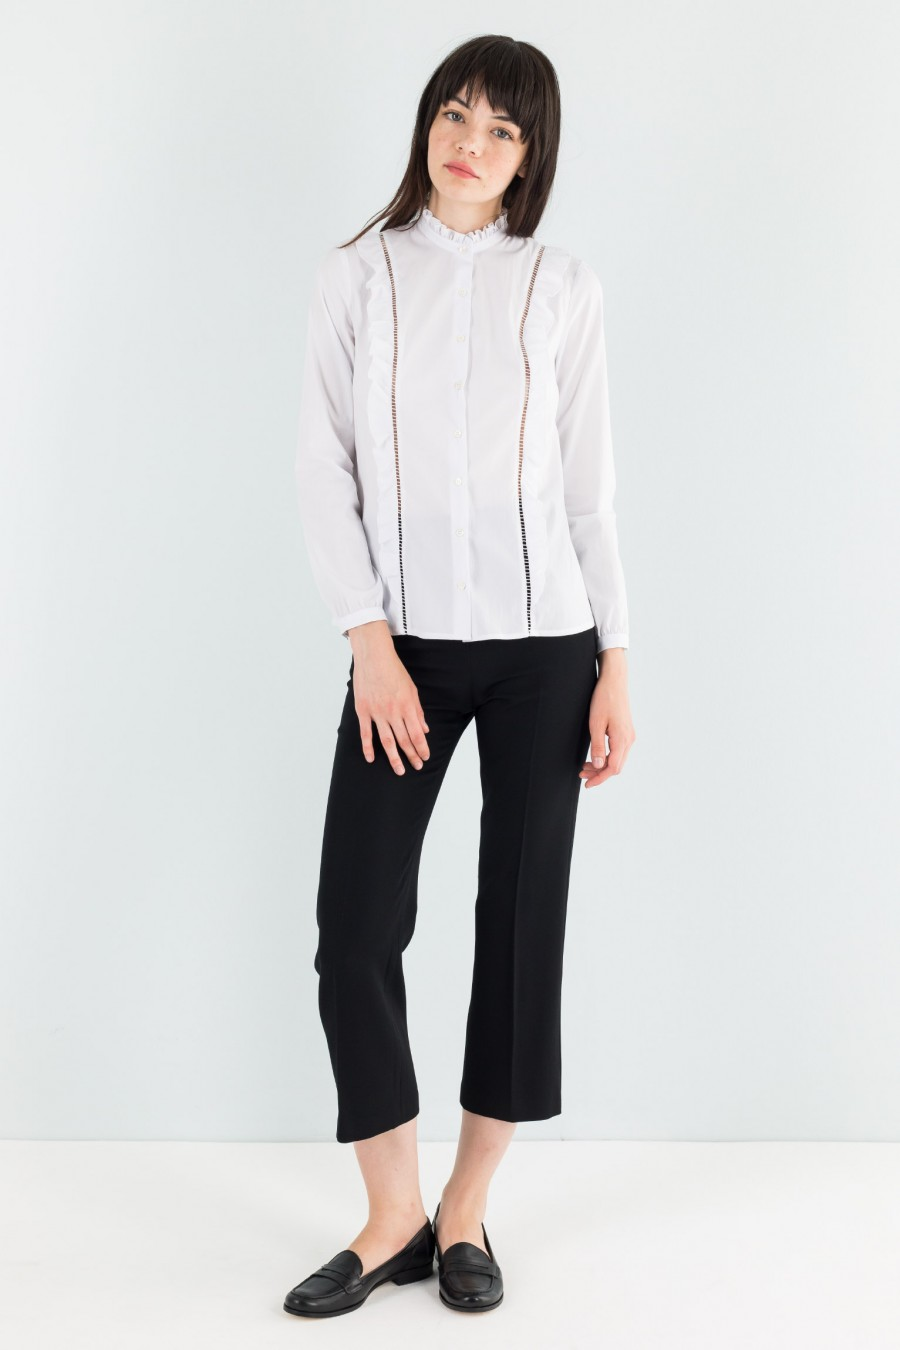 White western Lazzari shirt